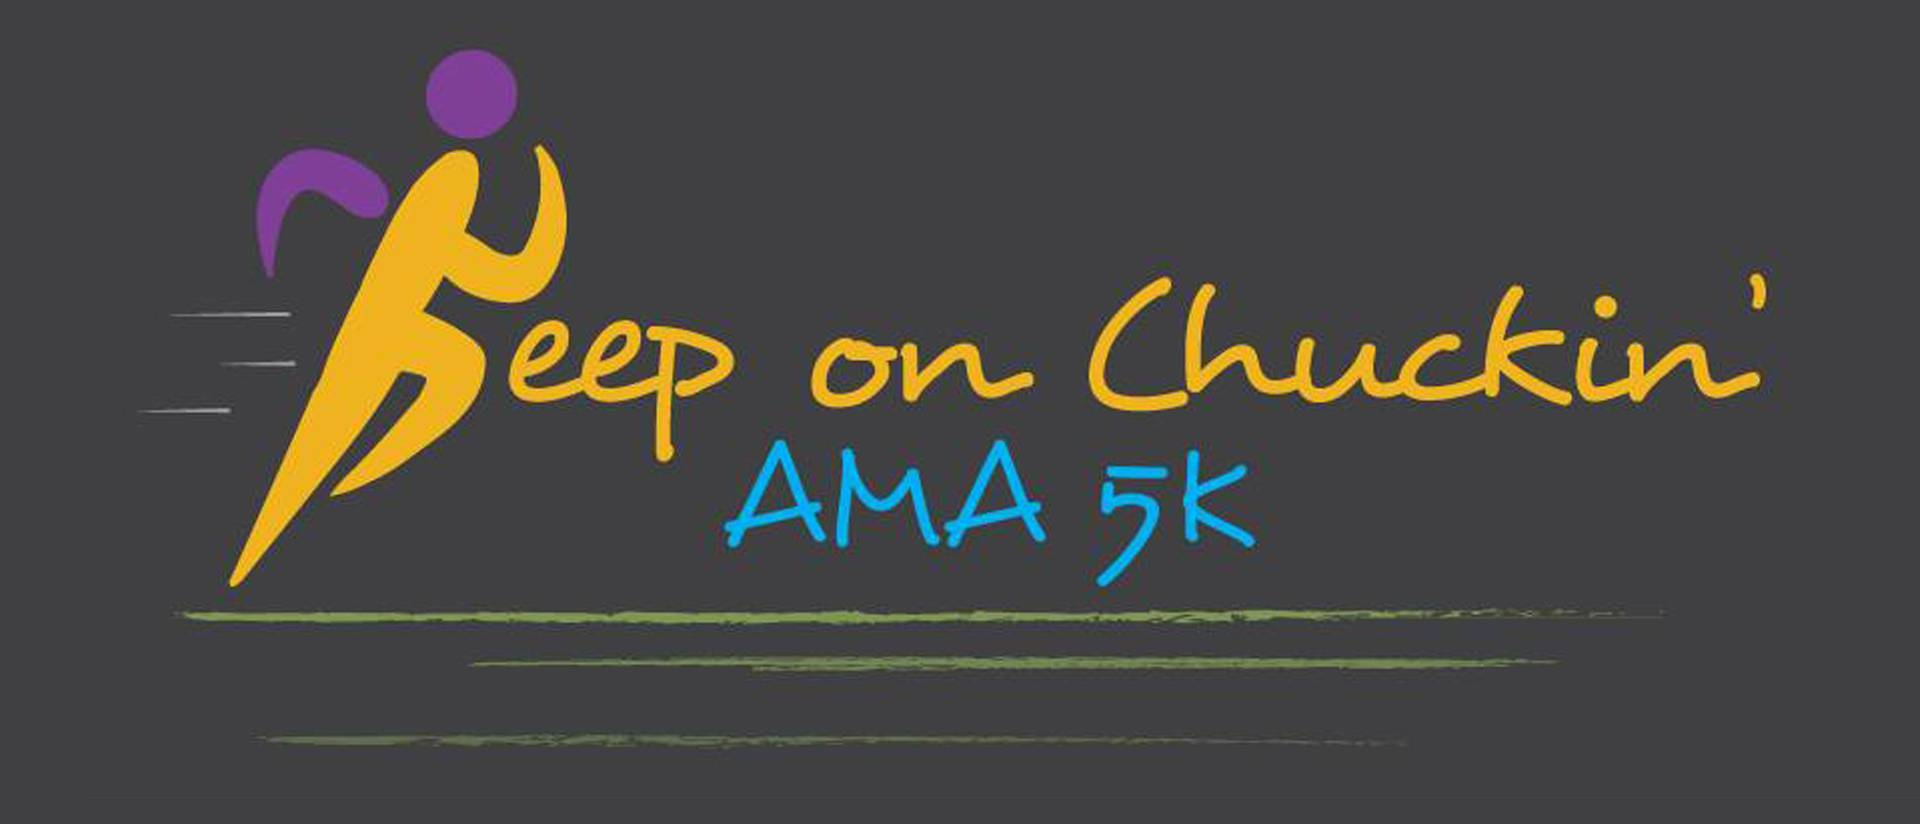 AMA Fun Run to honor Chuck Tomkovick